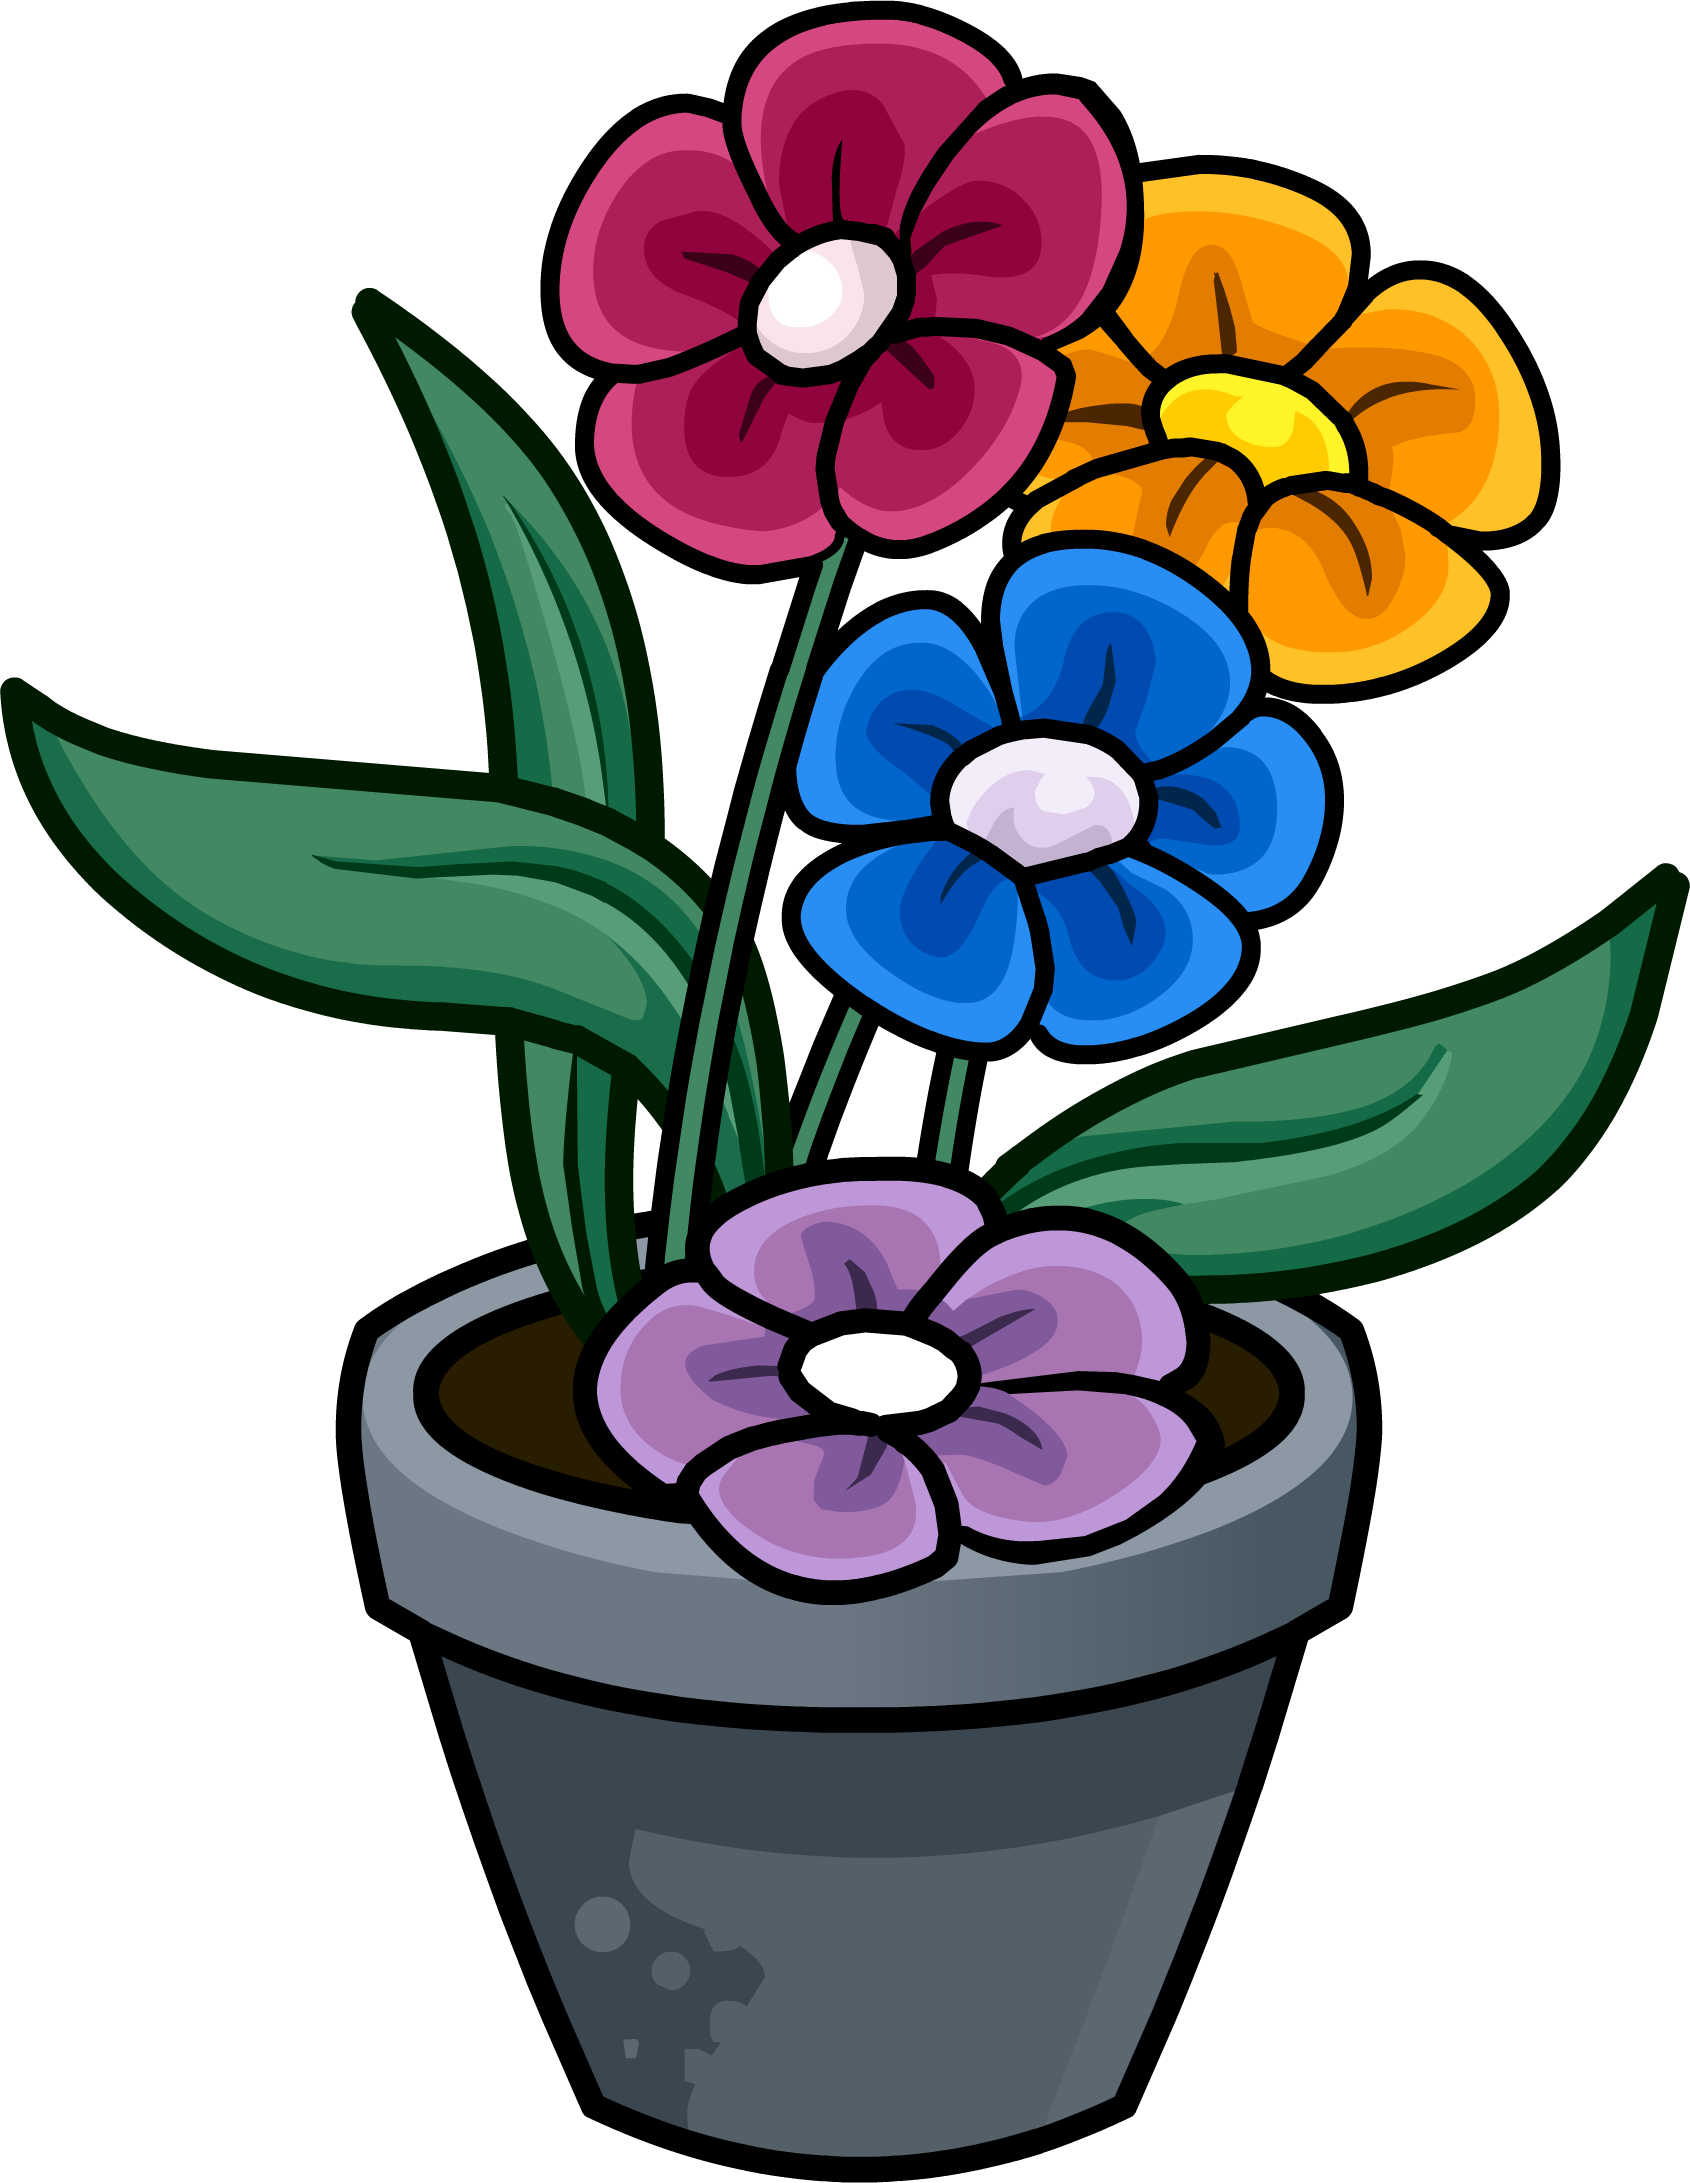 Empty flower pot clipart vector royalty free Flowerpots Clipart plant pot - Free Clipart on Dumielauxepices.net vector royalty free